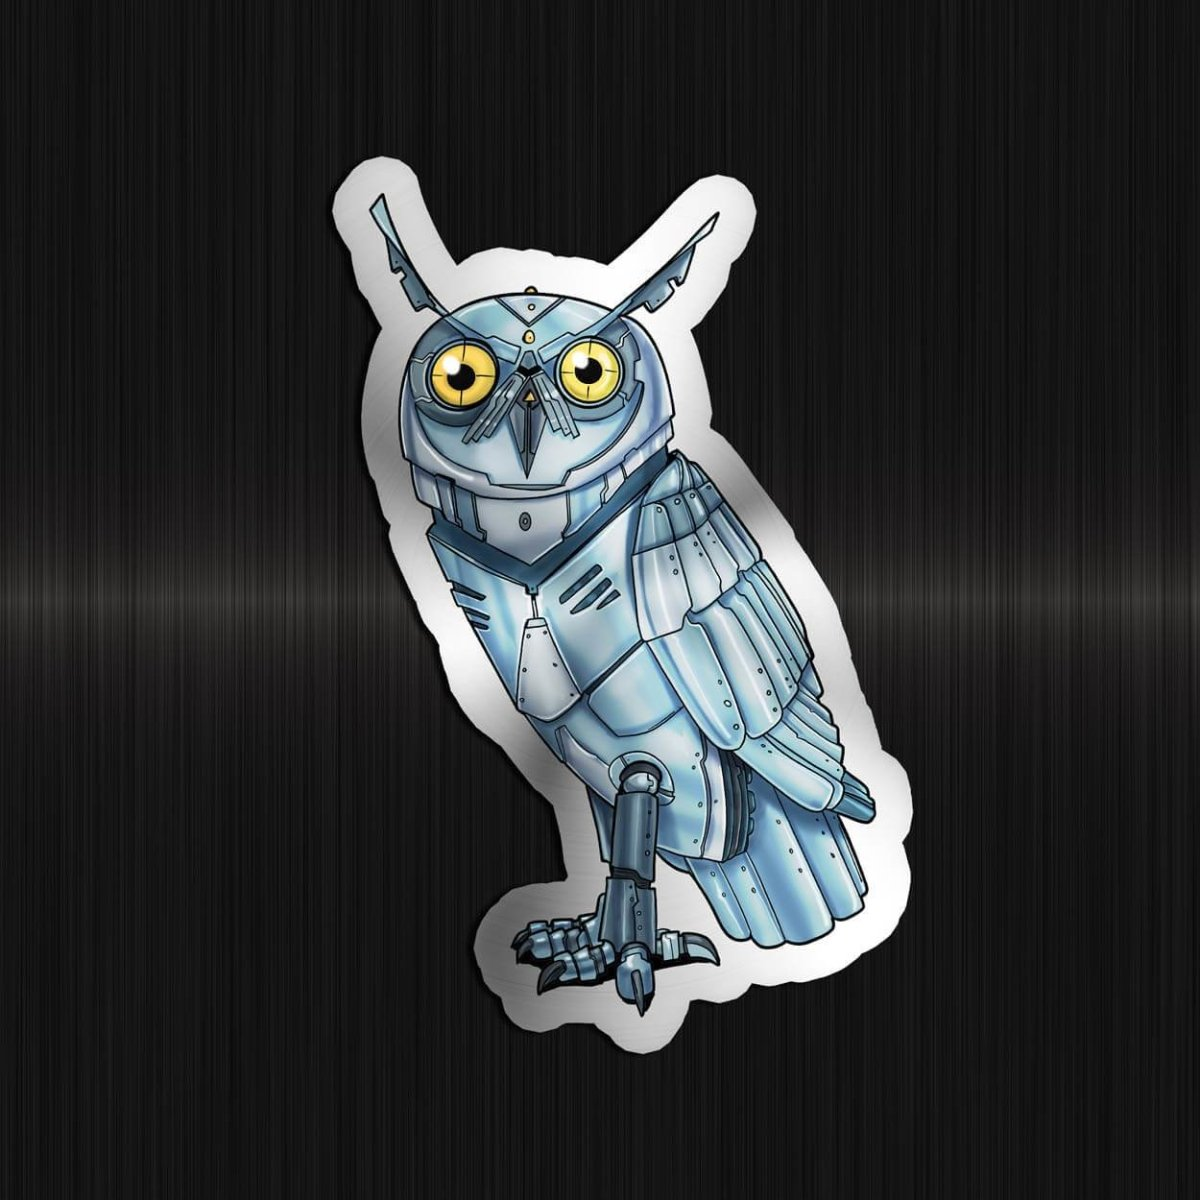 Owl Robot - Special Foil Sticker - Dan Pearce Sticker Shop